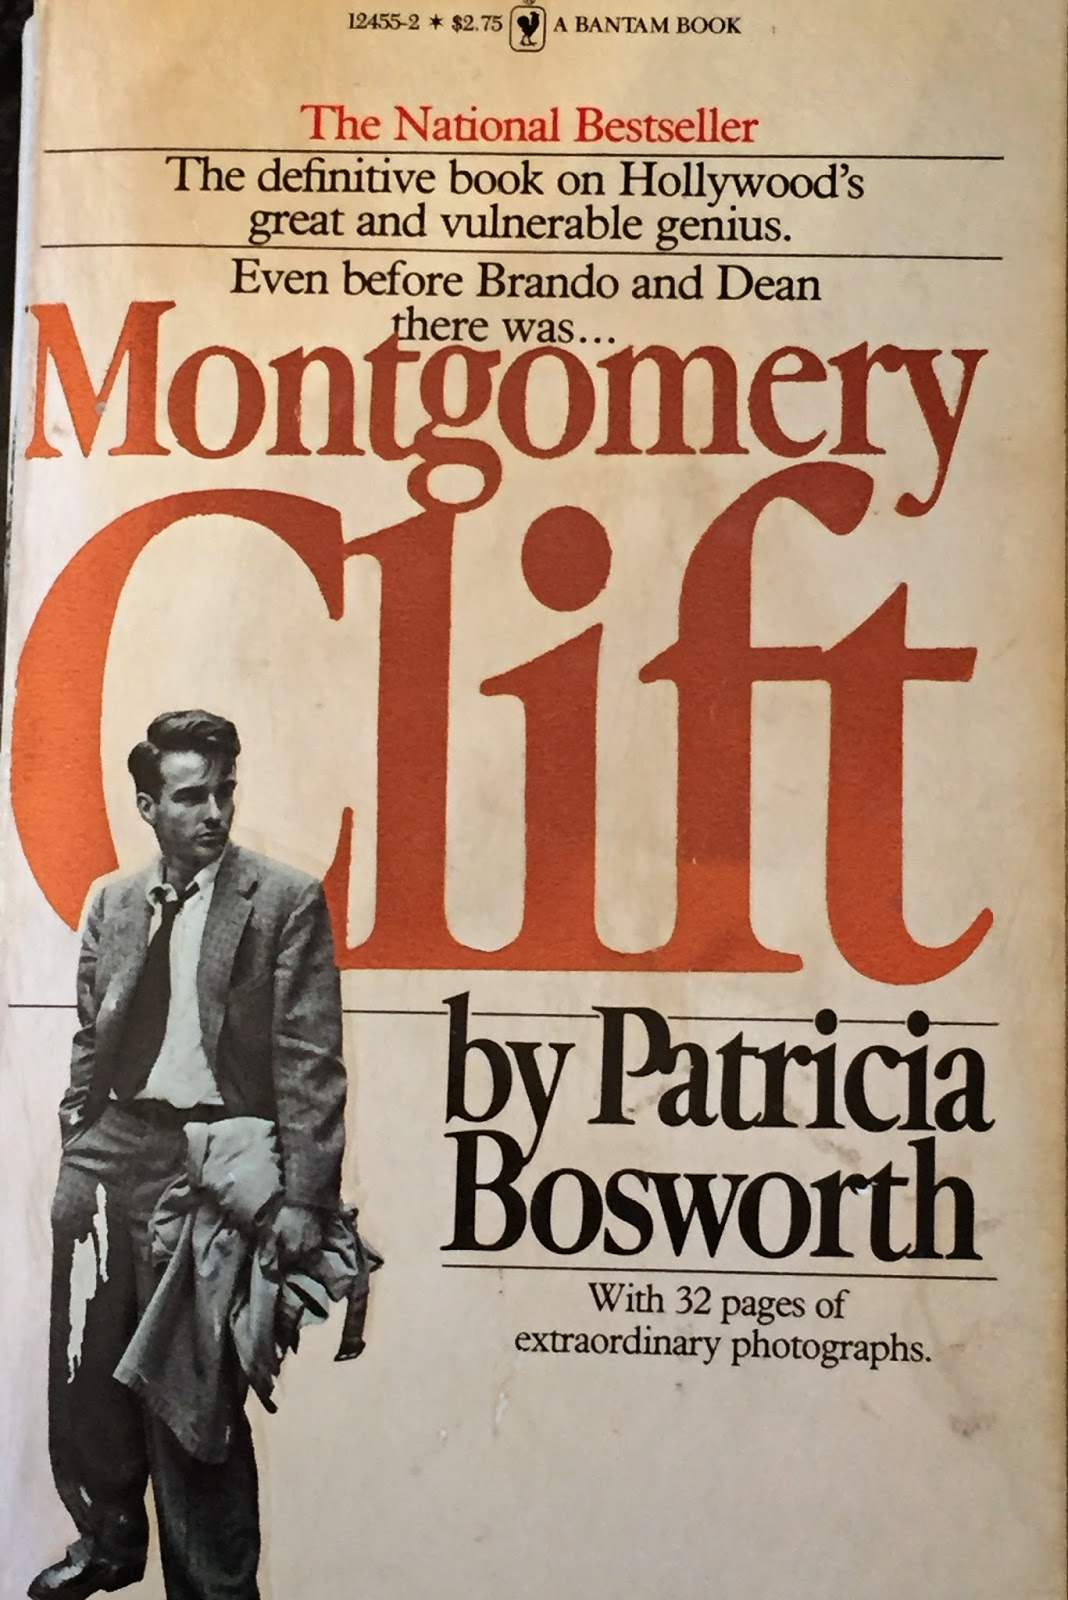 front cover of Patricia Bosworth biography of Montgomery Clift